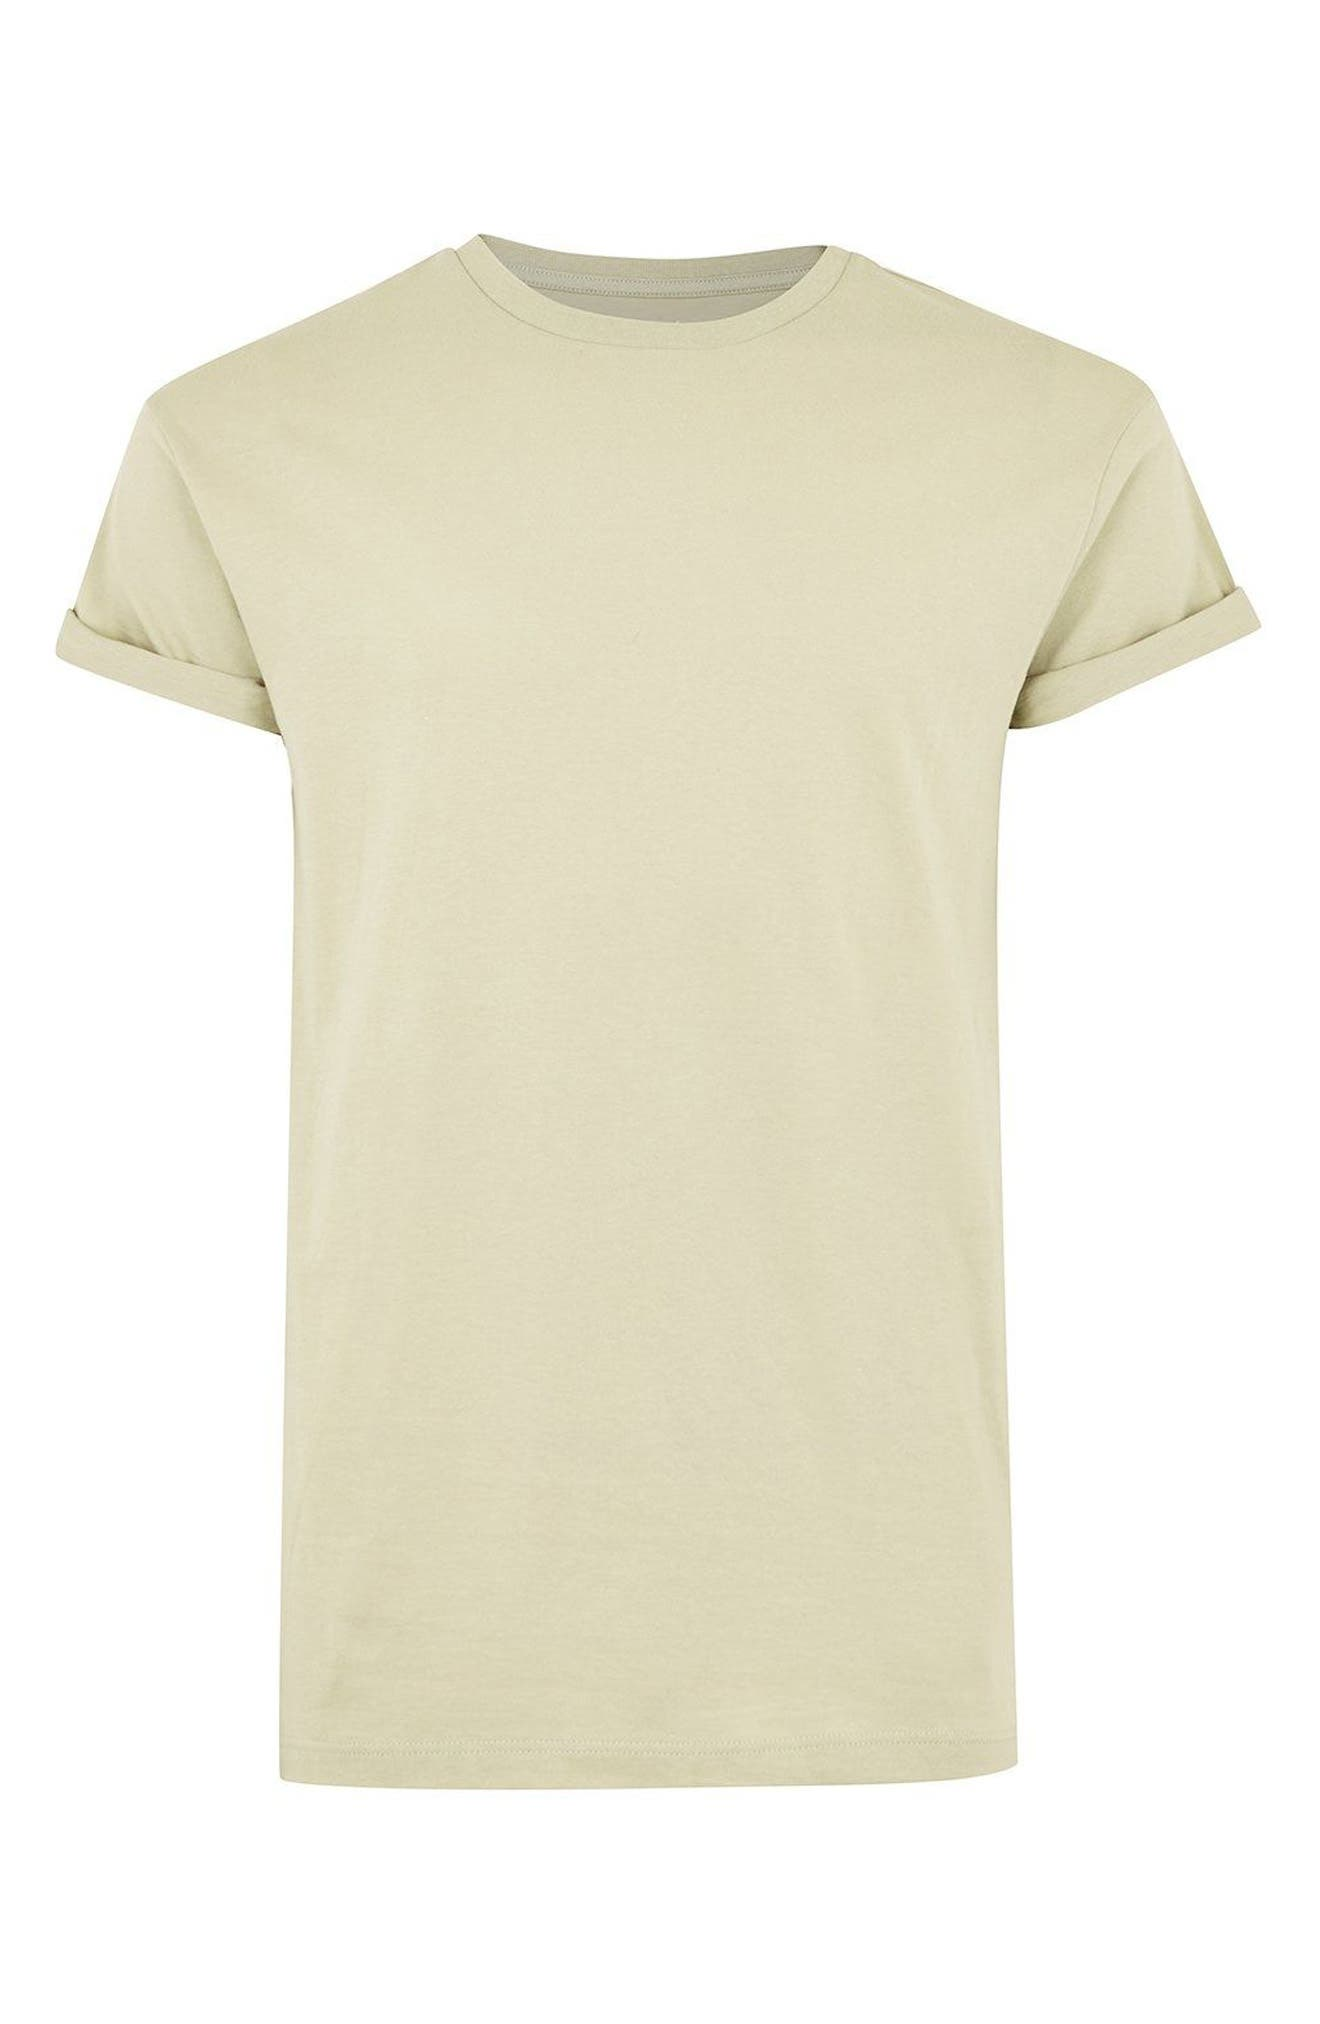 Muscle Fit Roller T-Shirt,                             Alternate thumbnail 3, color,                             330